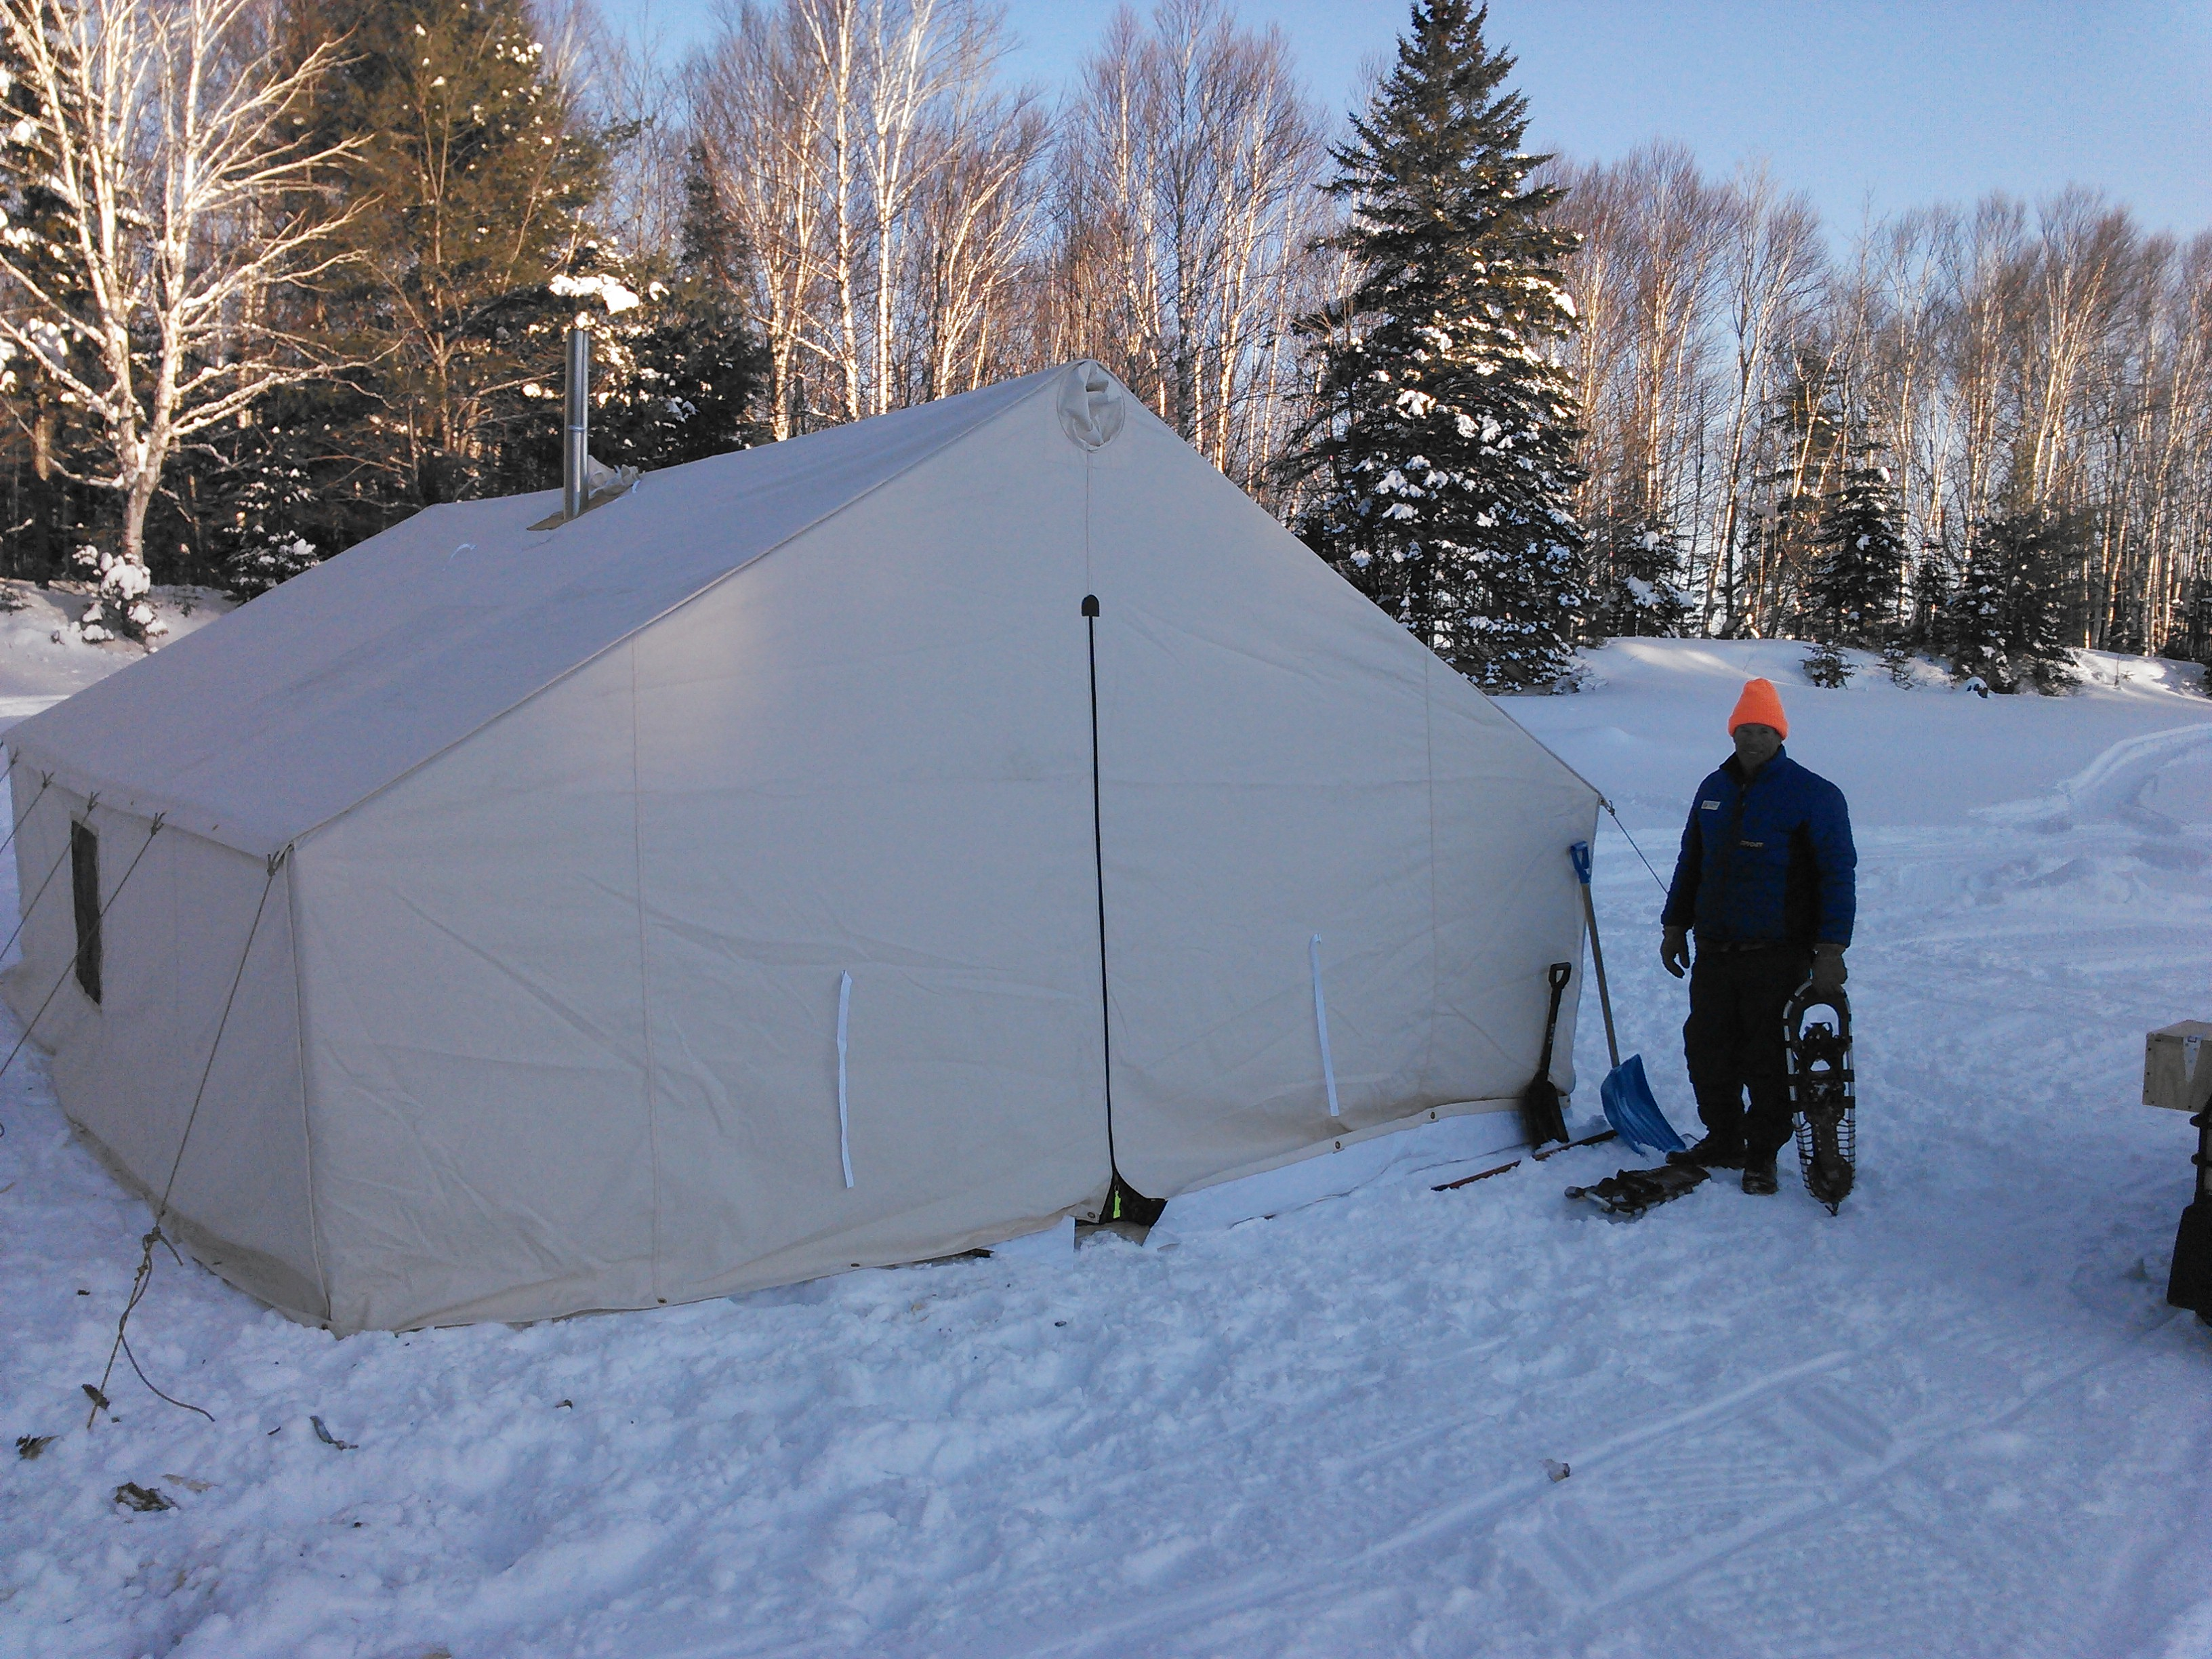 Winter camping in Maine